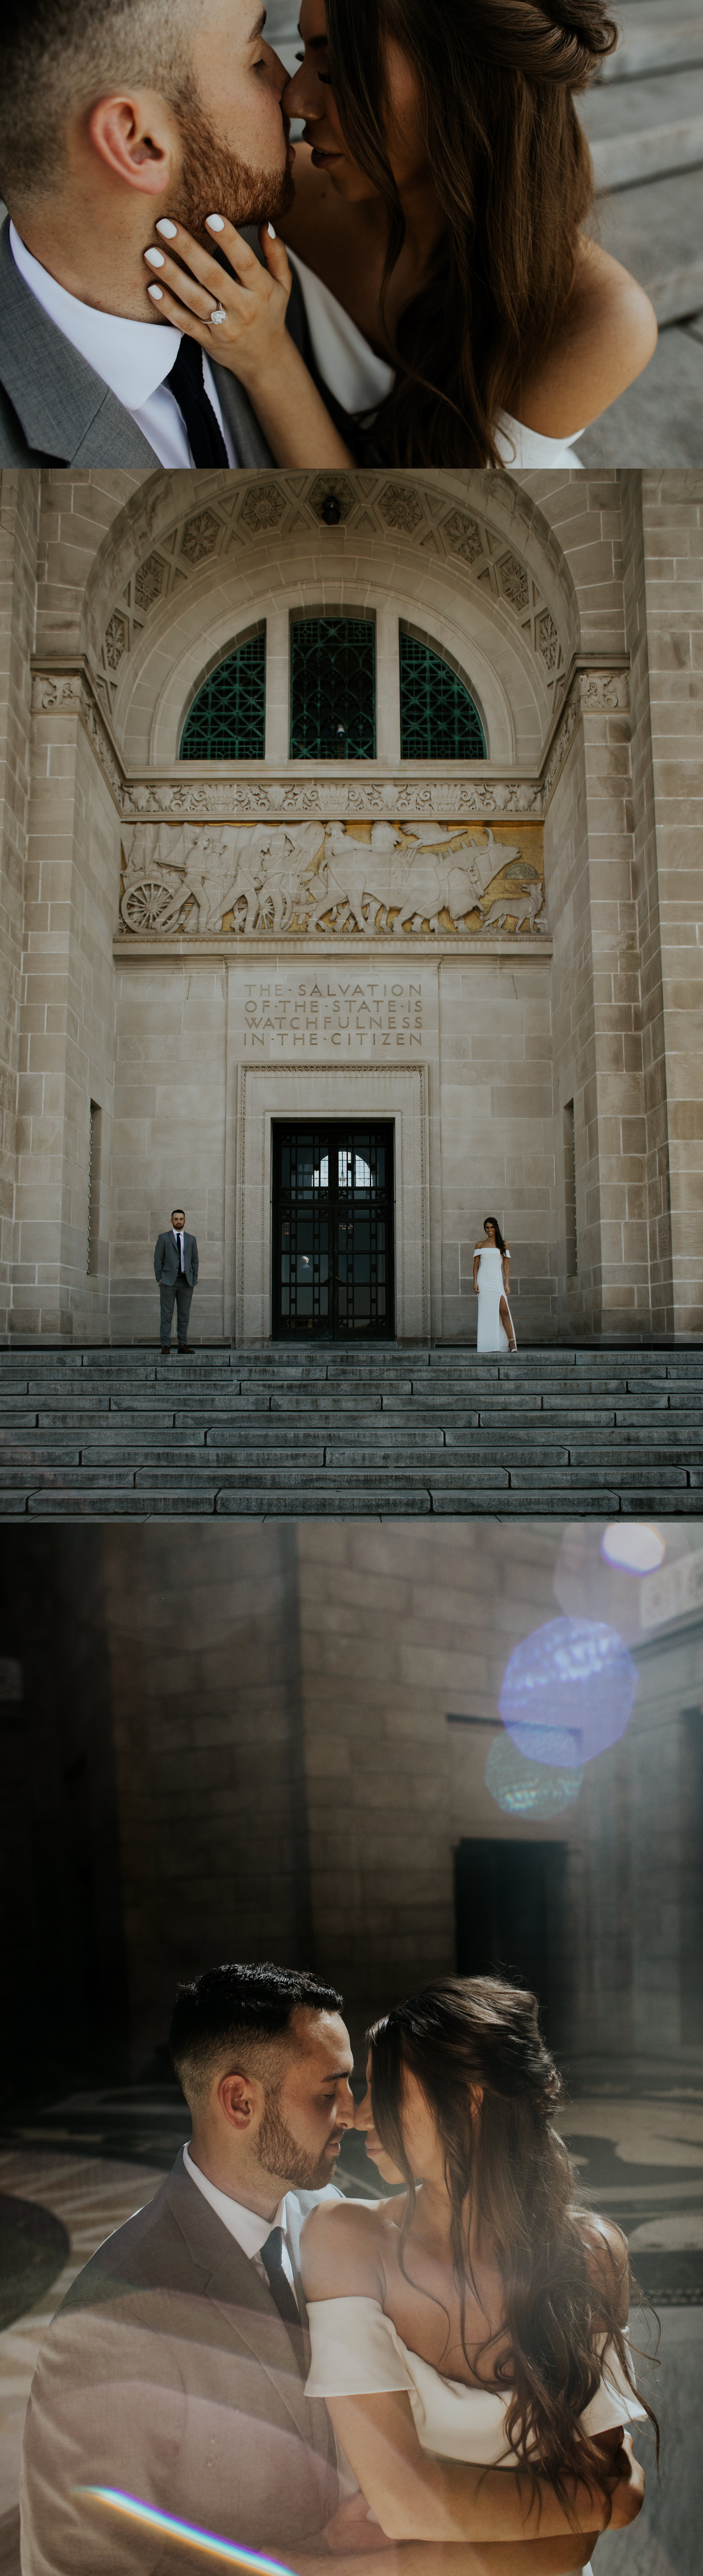 Spring Nebraska State Capitol Engagement Session - Gabby and Michael - Trin Jensen Photography_0004.jpg